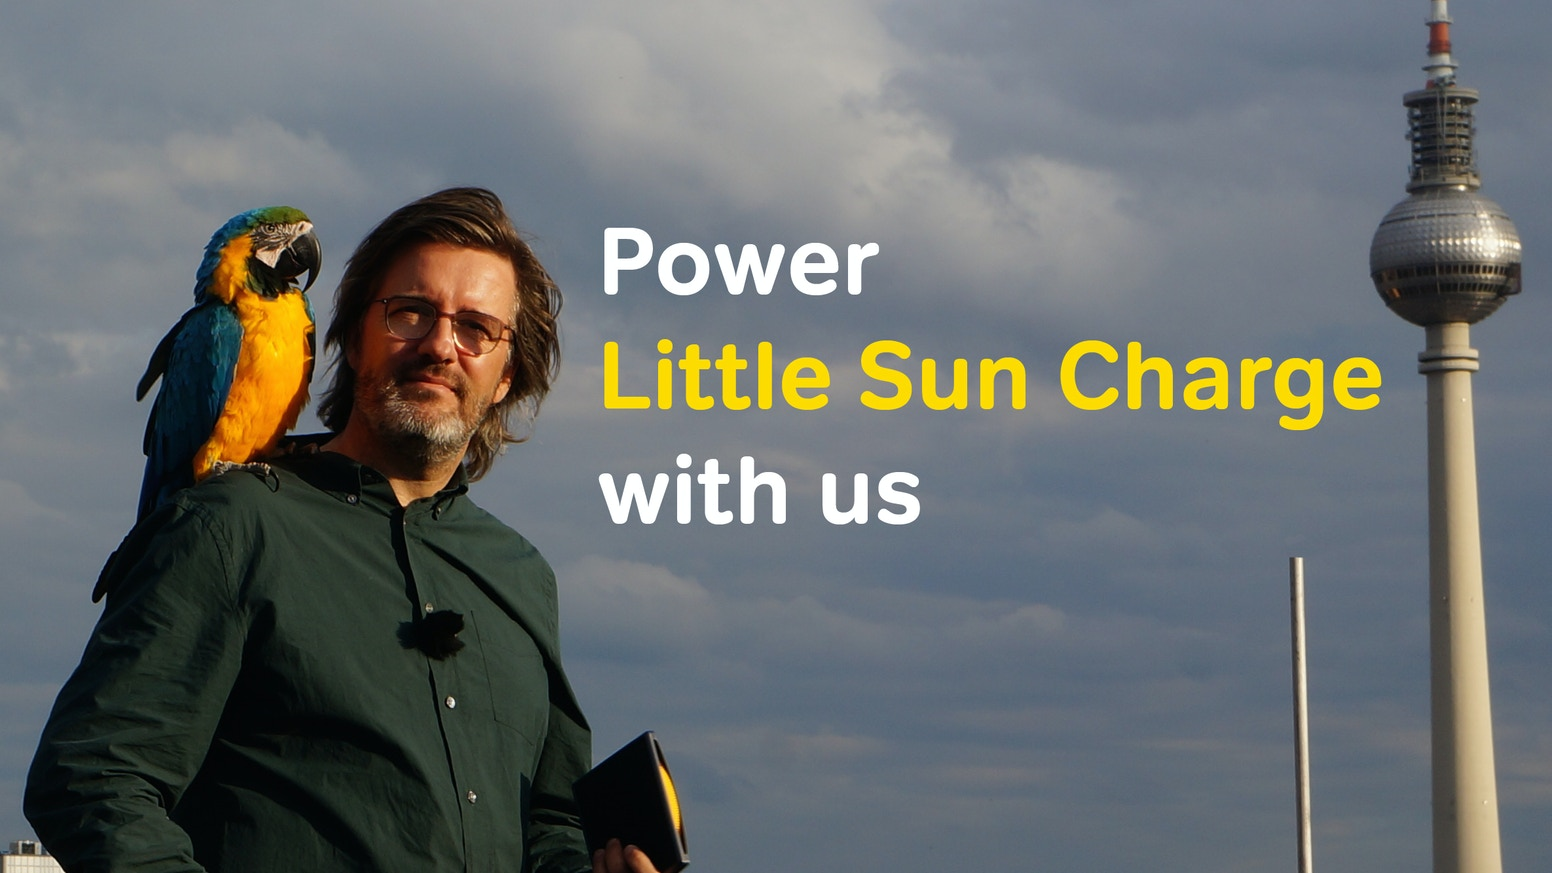 Little Sun Charge is a high-performance solar phone charger and light designed by artist Olafur Eliasson and engineer Frederik Ottesen.